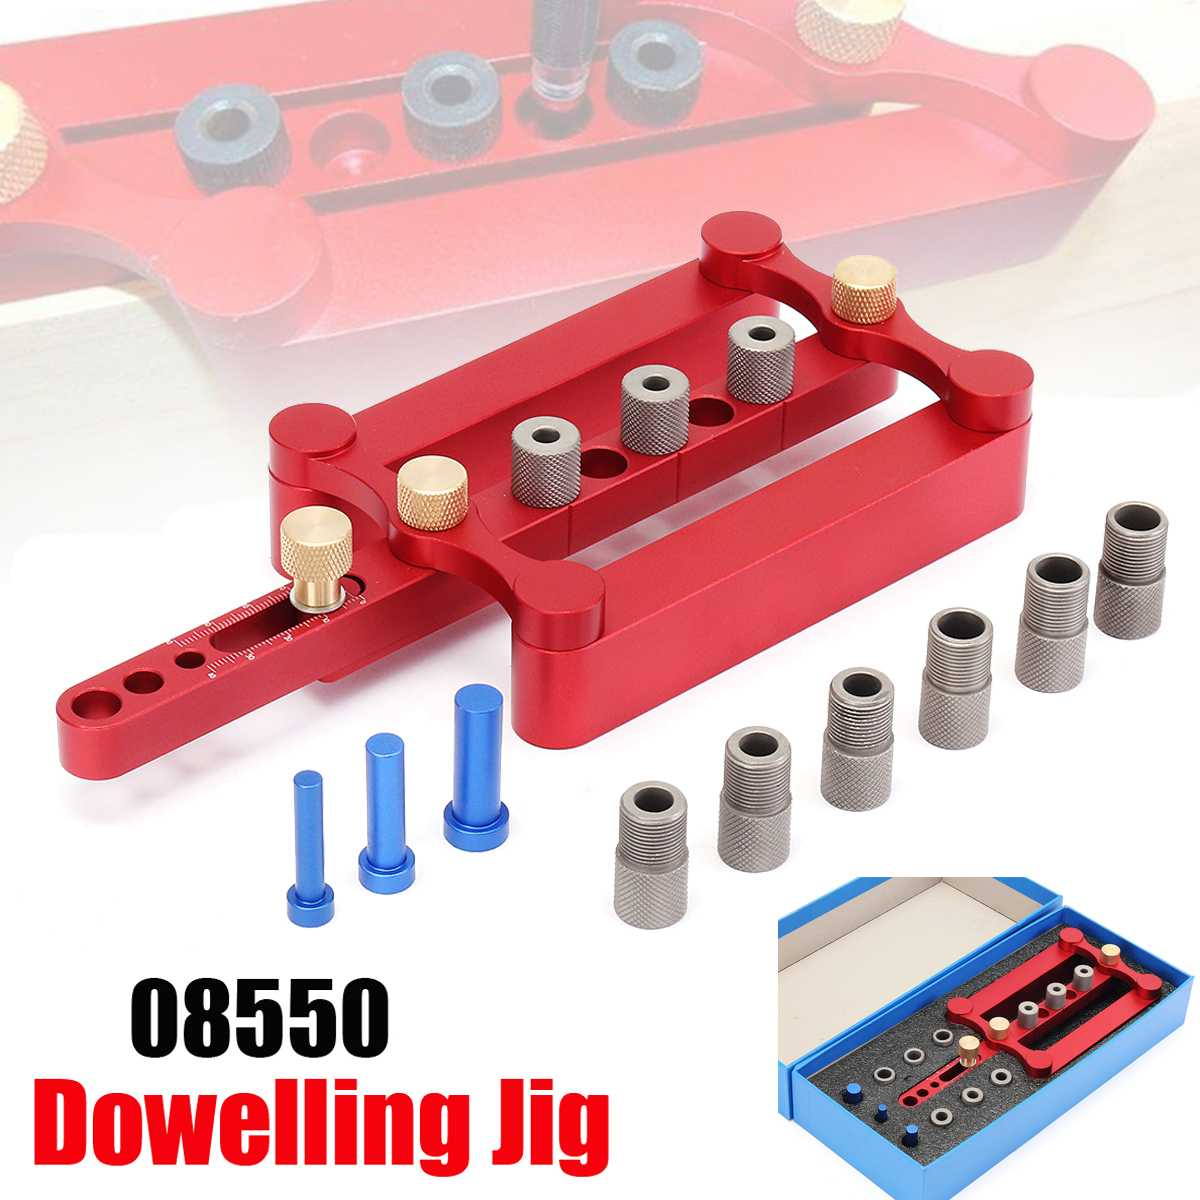 Self Centering Dowelling Jig Metric Dowel 6/8/10mm Drilling Tools for Wood WorkingSelf Centering Dowelling Jig Metric Dowel 6/8/10mm Drilling Tools for Wood Working